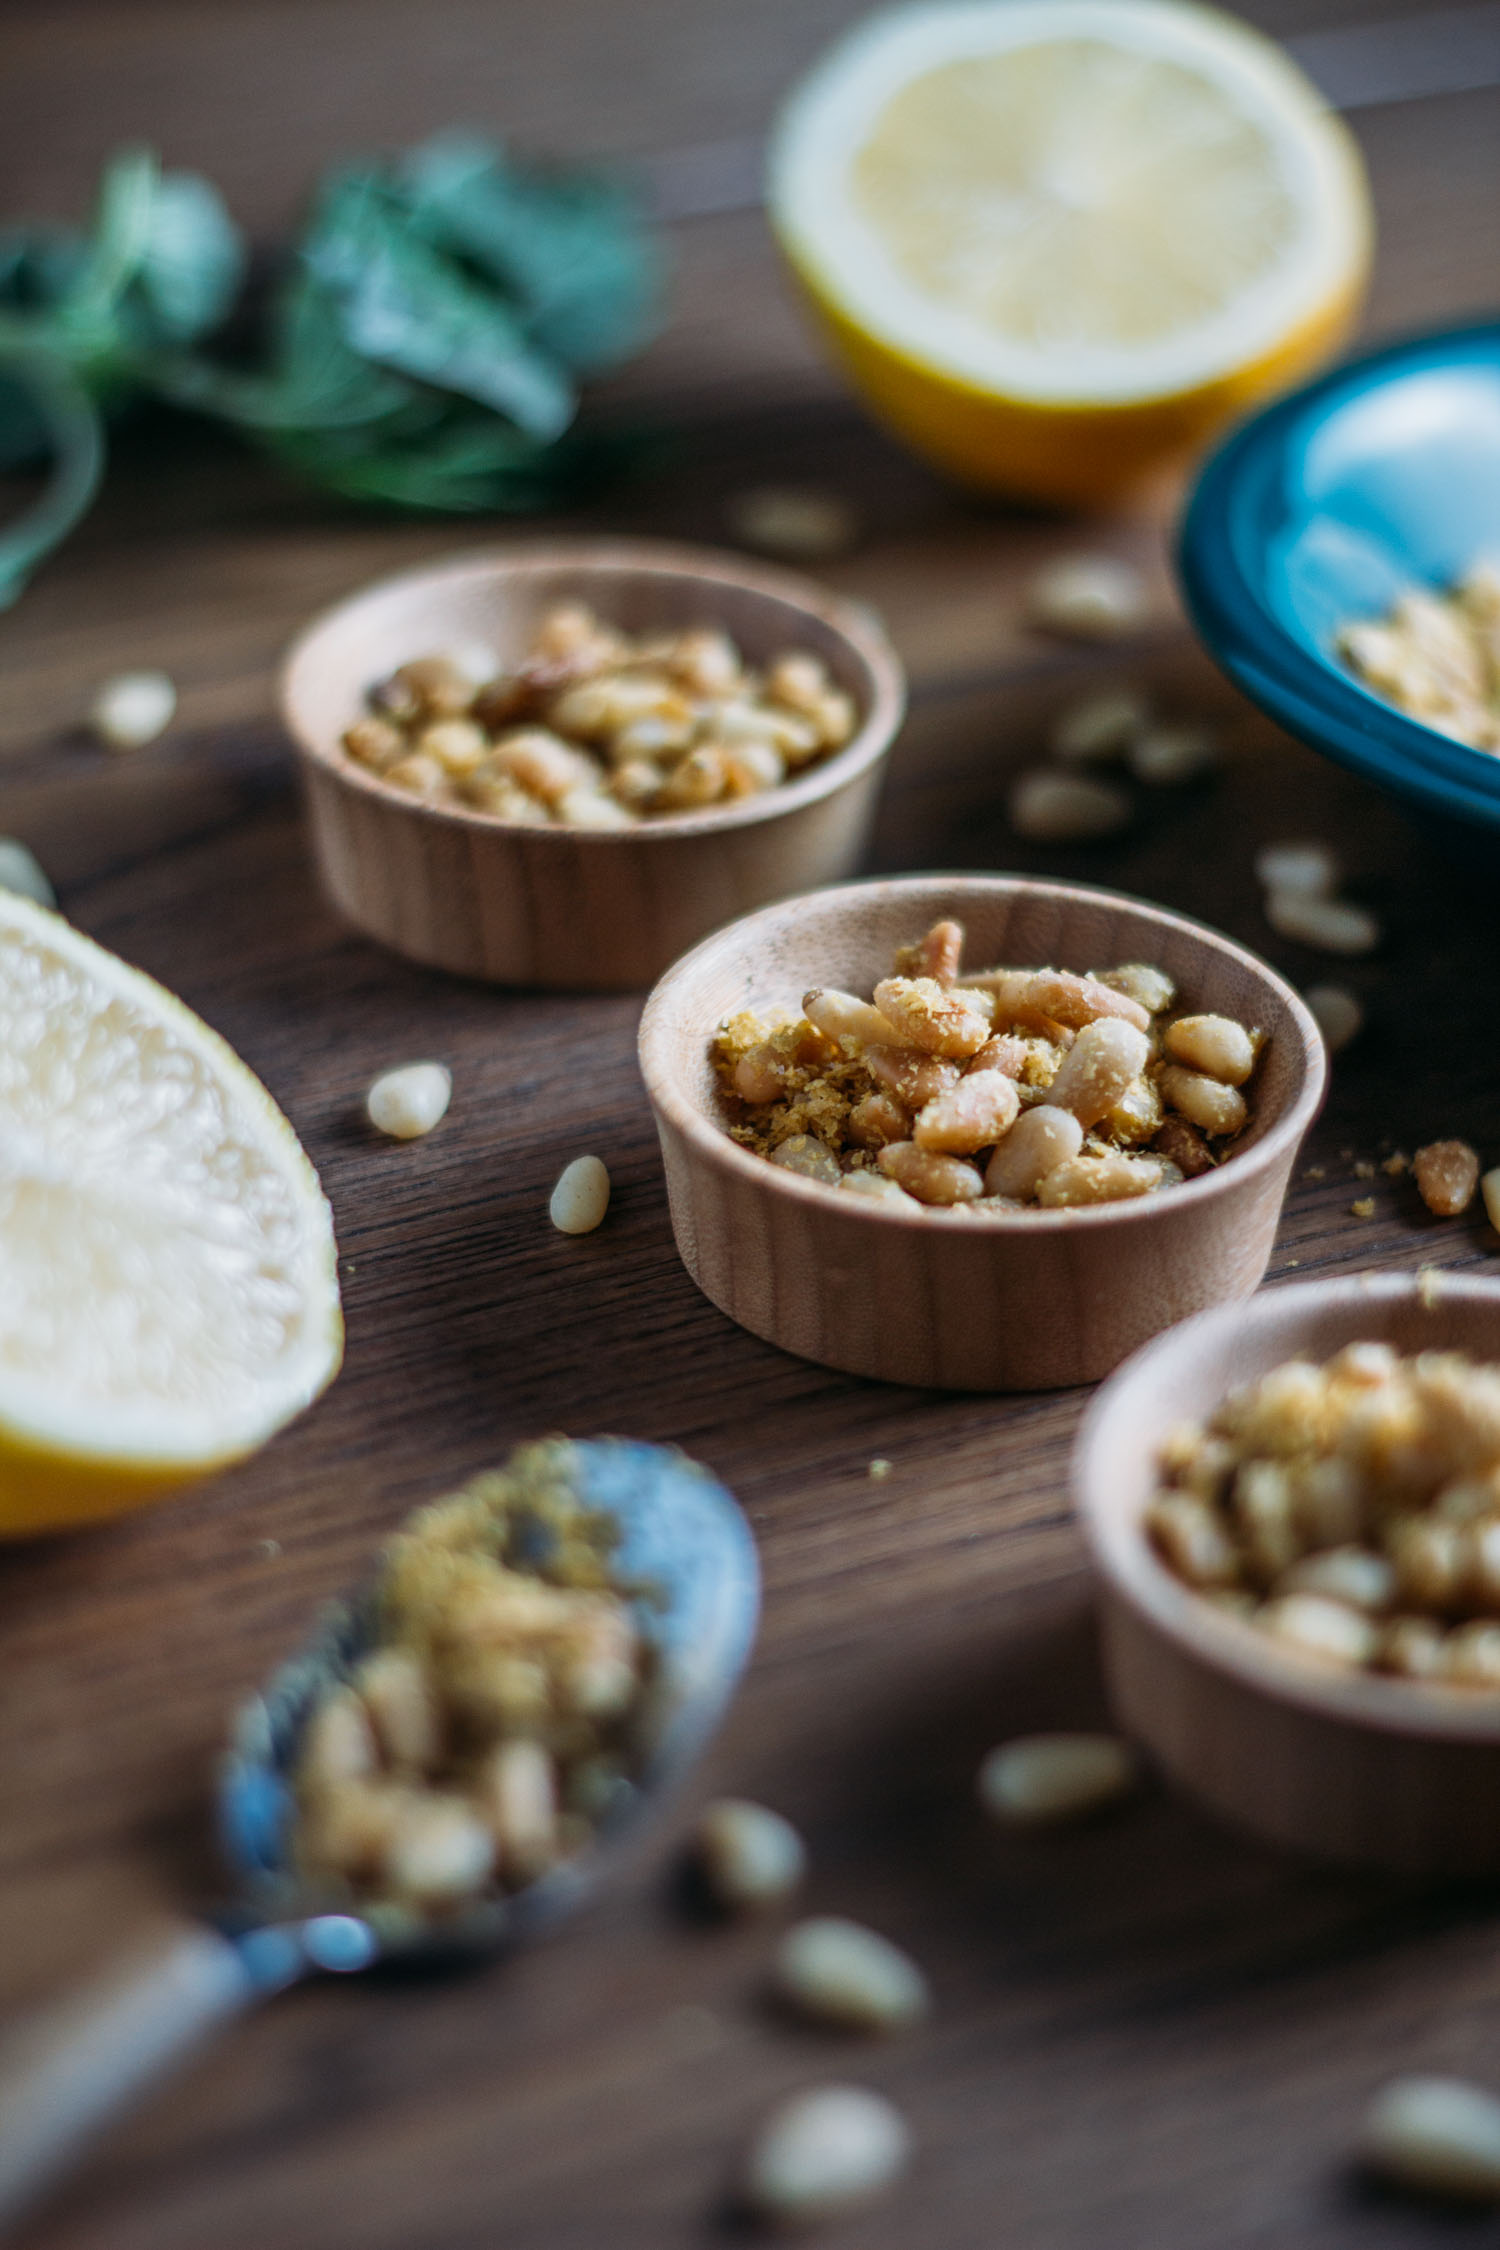 Plant-Based Pine Nut Parmesan #nutritionalyeast #gluten-free